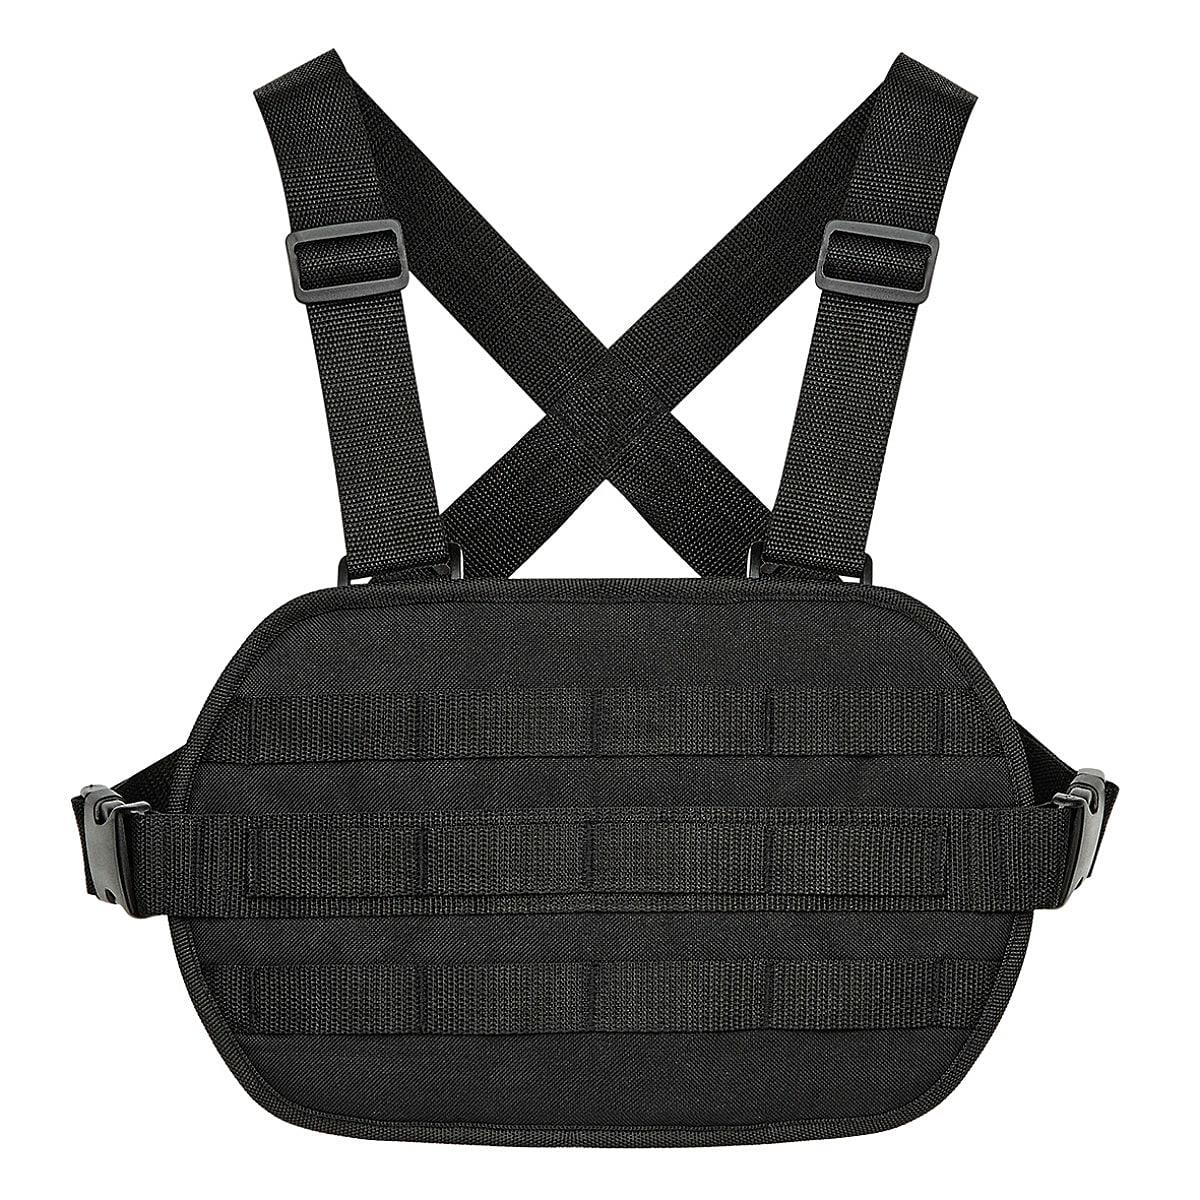 Bagbase Modulr Chest Rig in Black (Product Code: BG245)